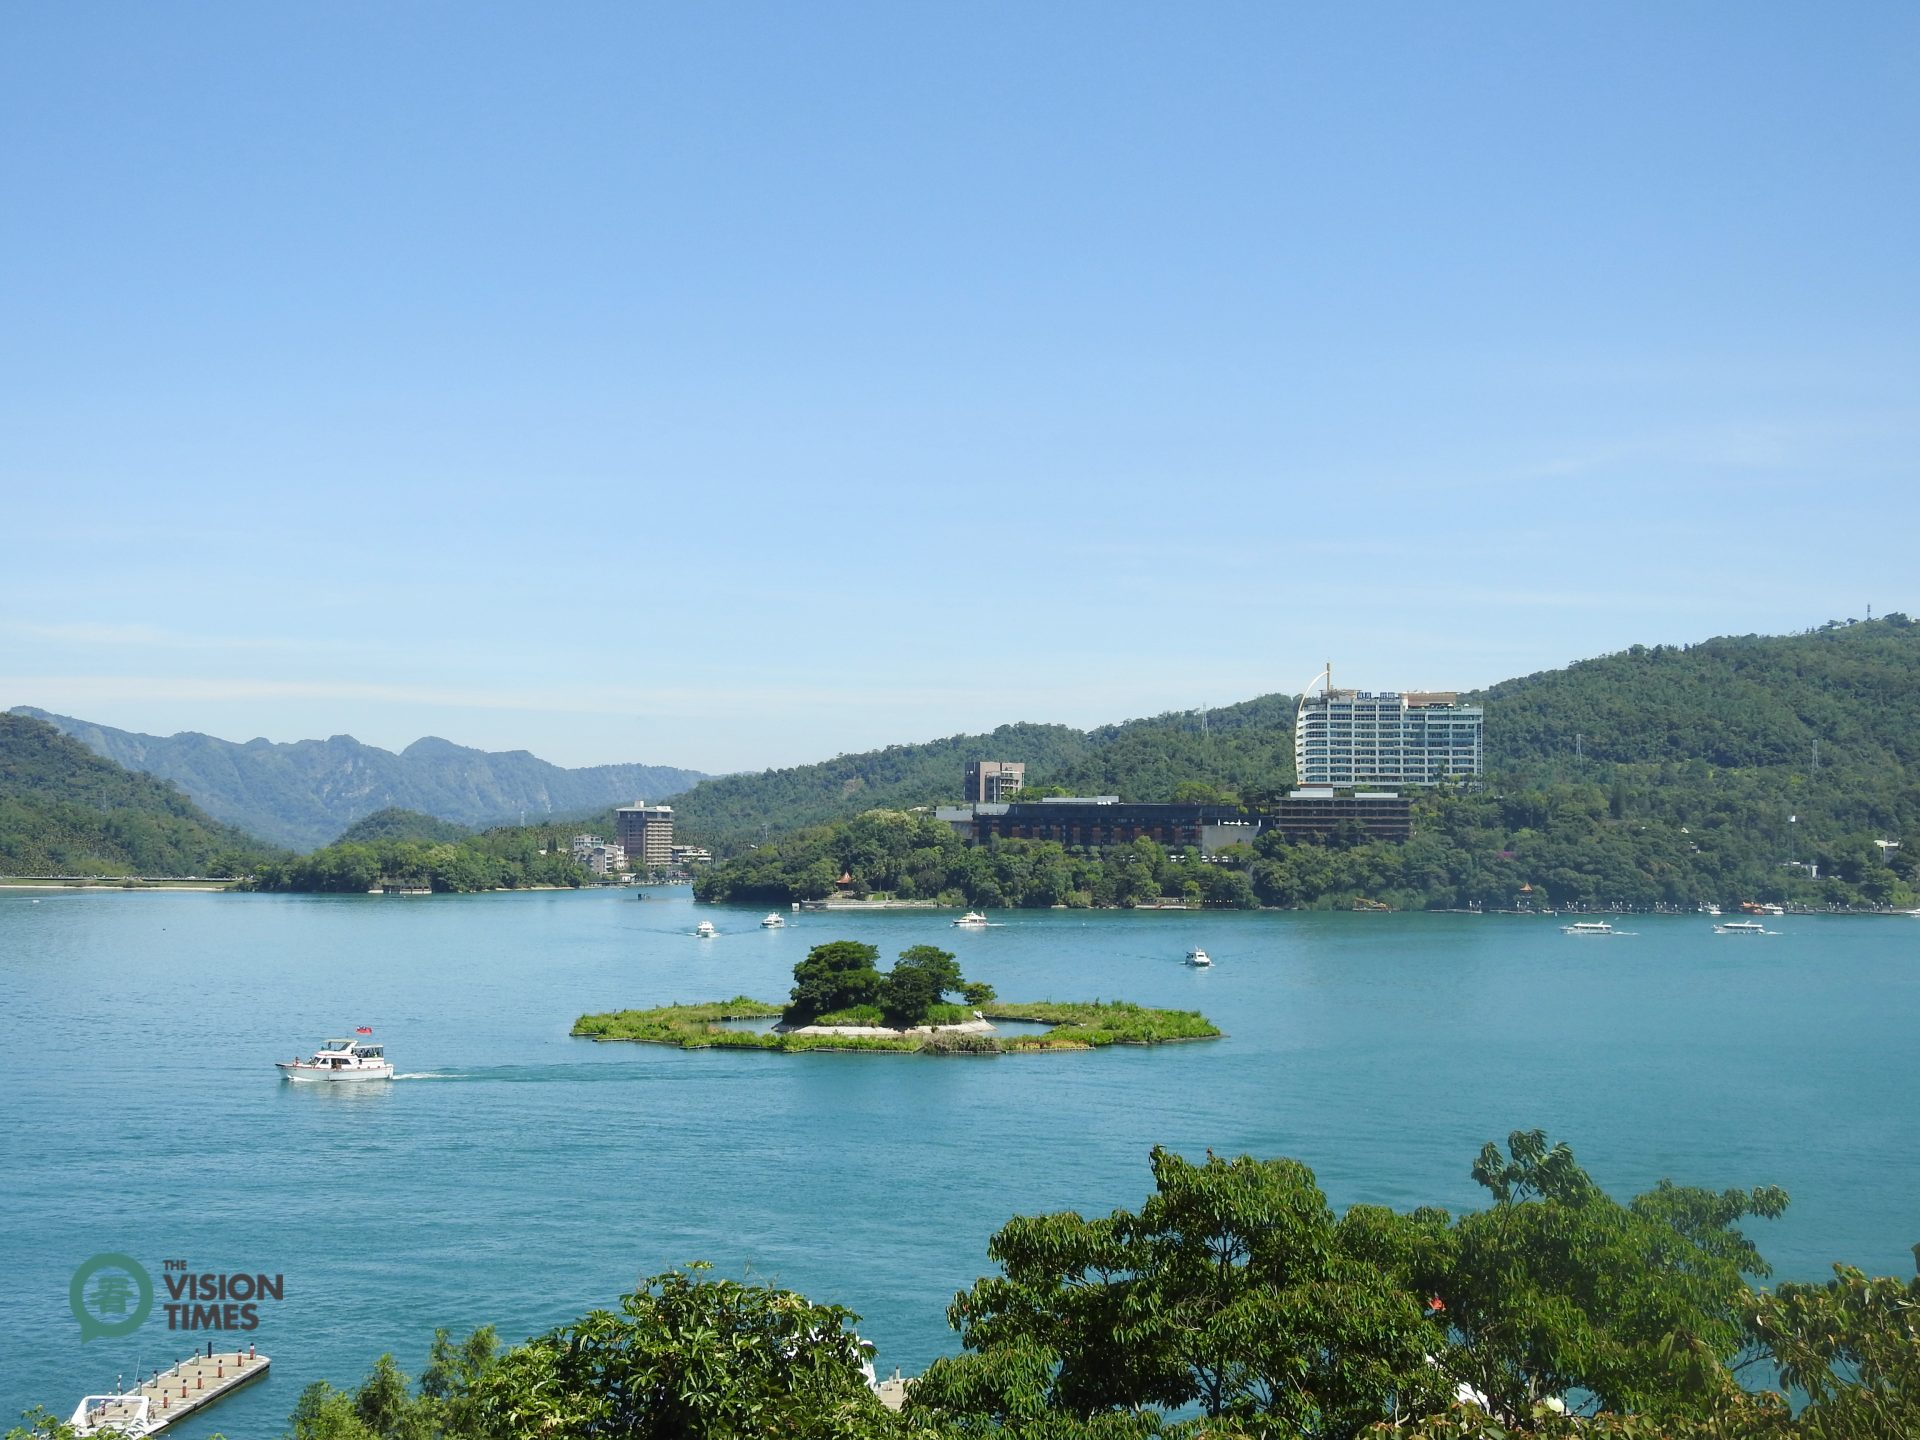 The Sun Moon Lake is one of most famous tourist attractions in Taiwan. (Image: Billy Shyu / Vision Times)